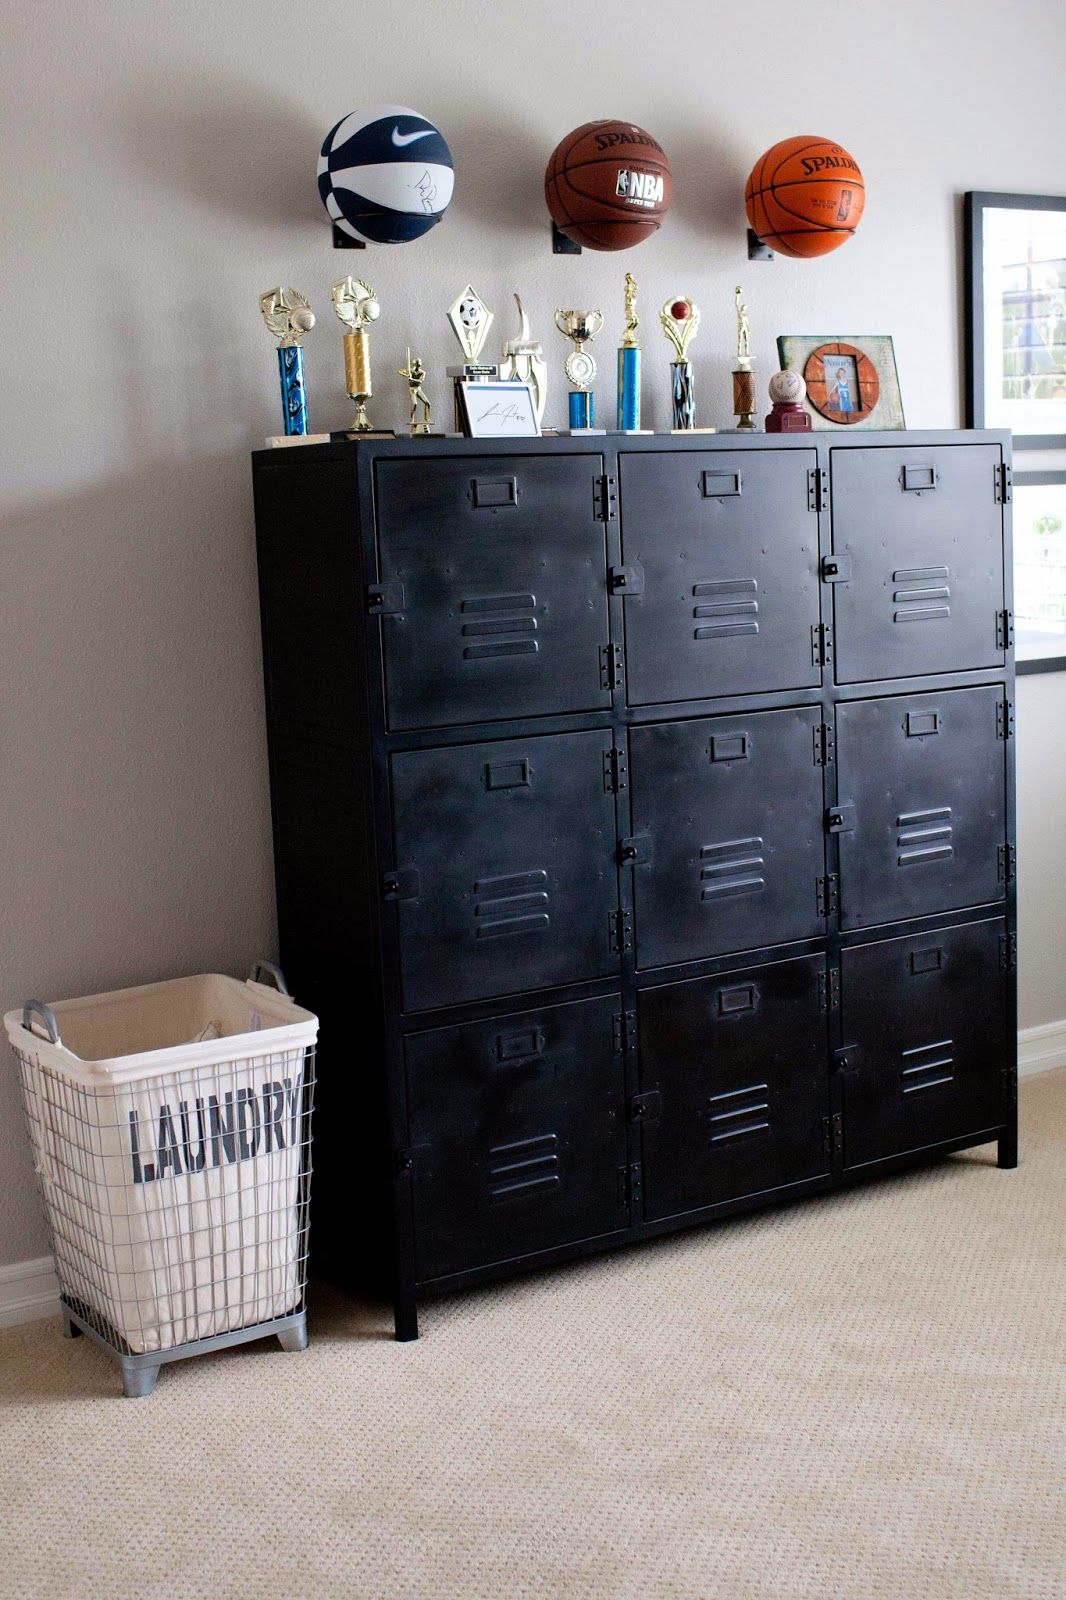 Basketballs lockers pinteres for Decorative lockers for kids rooms